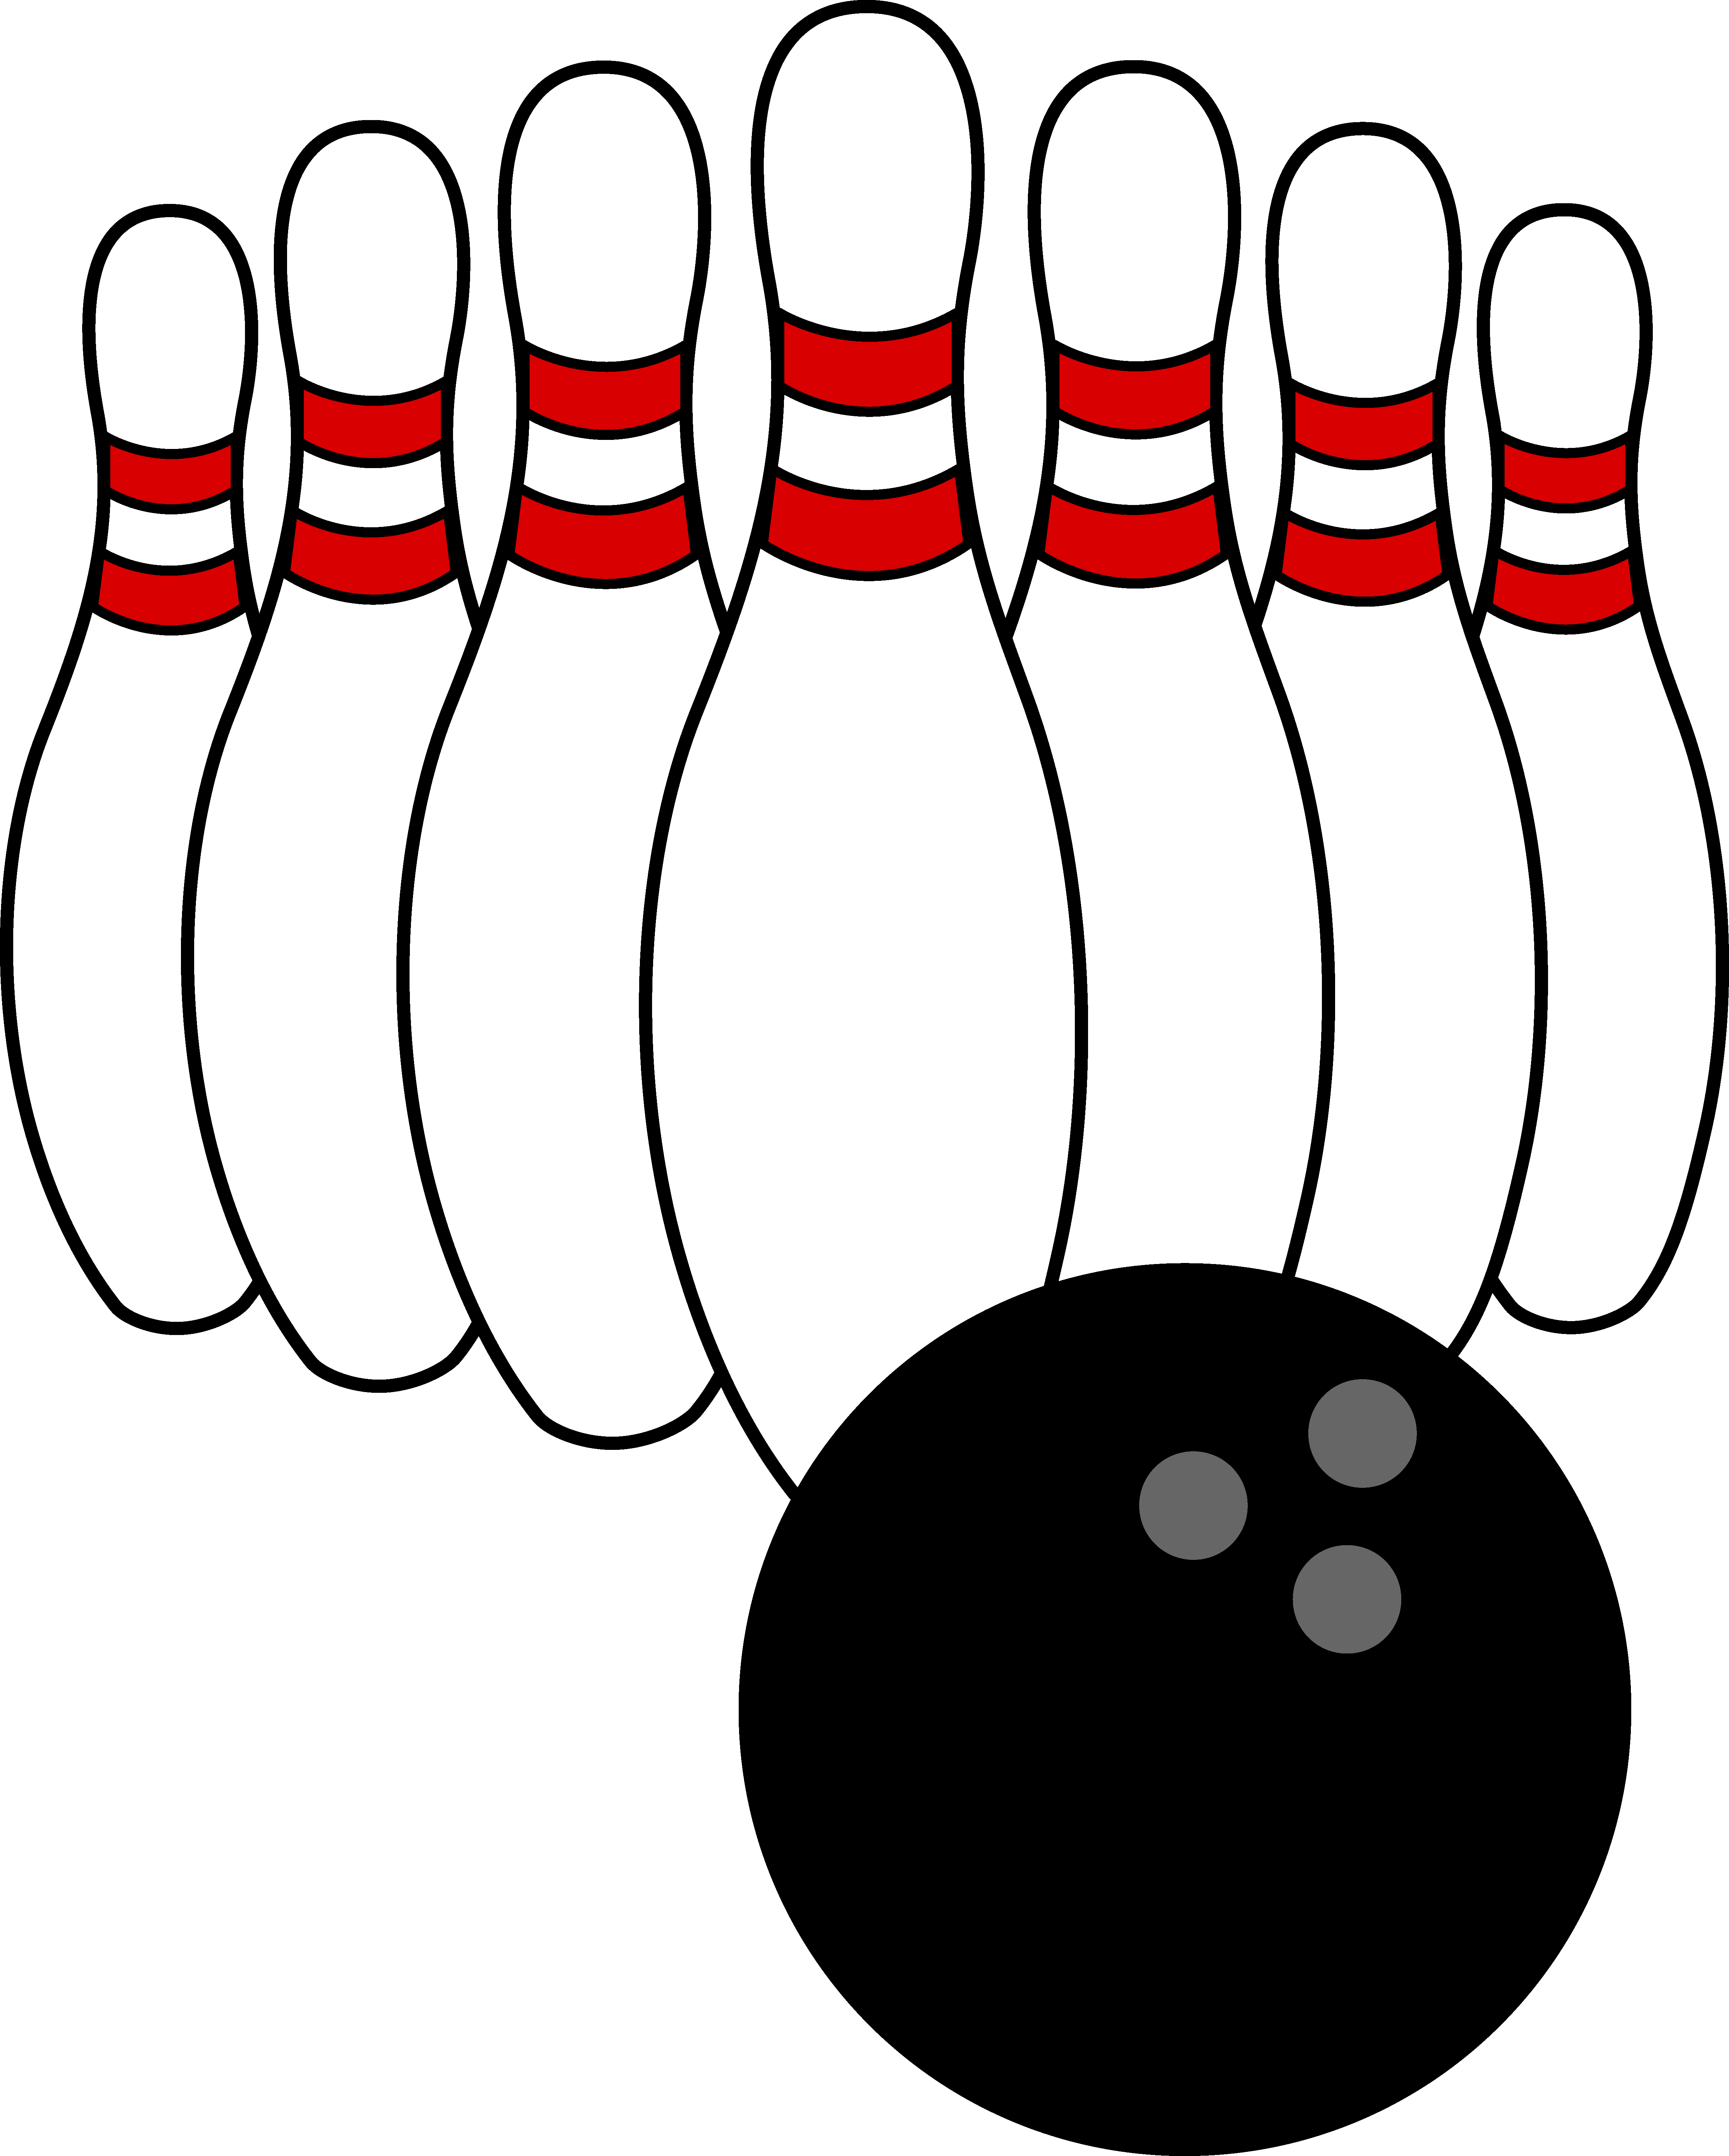 Bowling logo. Clip art ball and